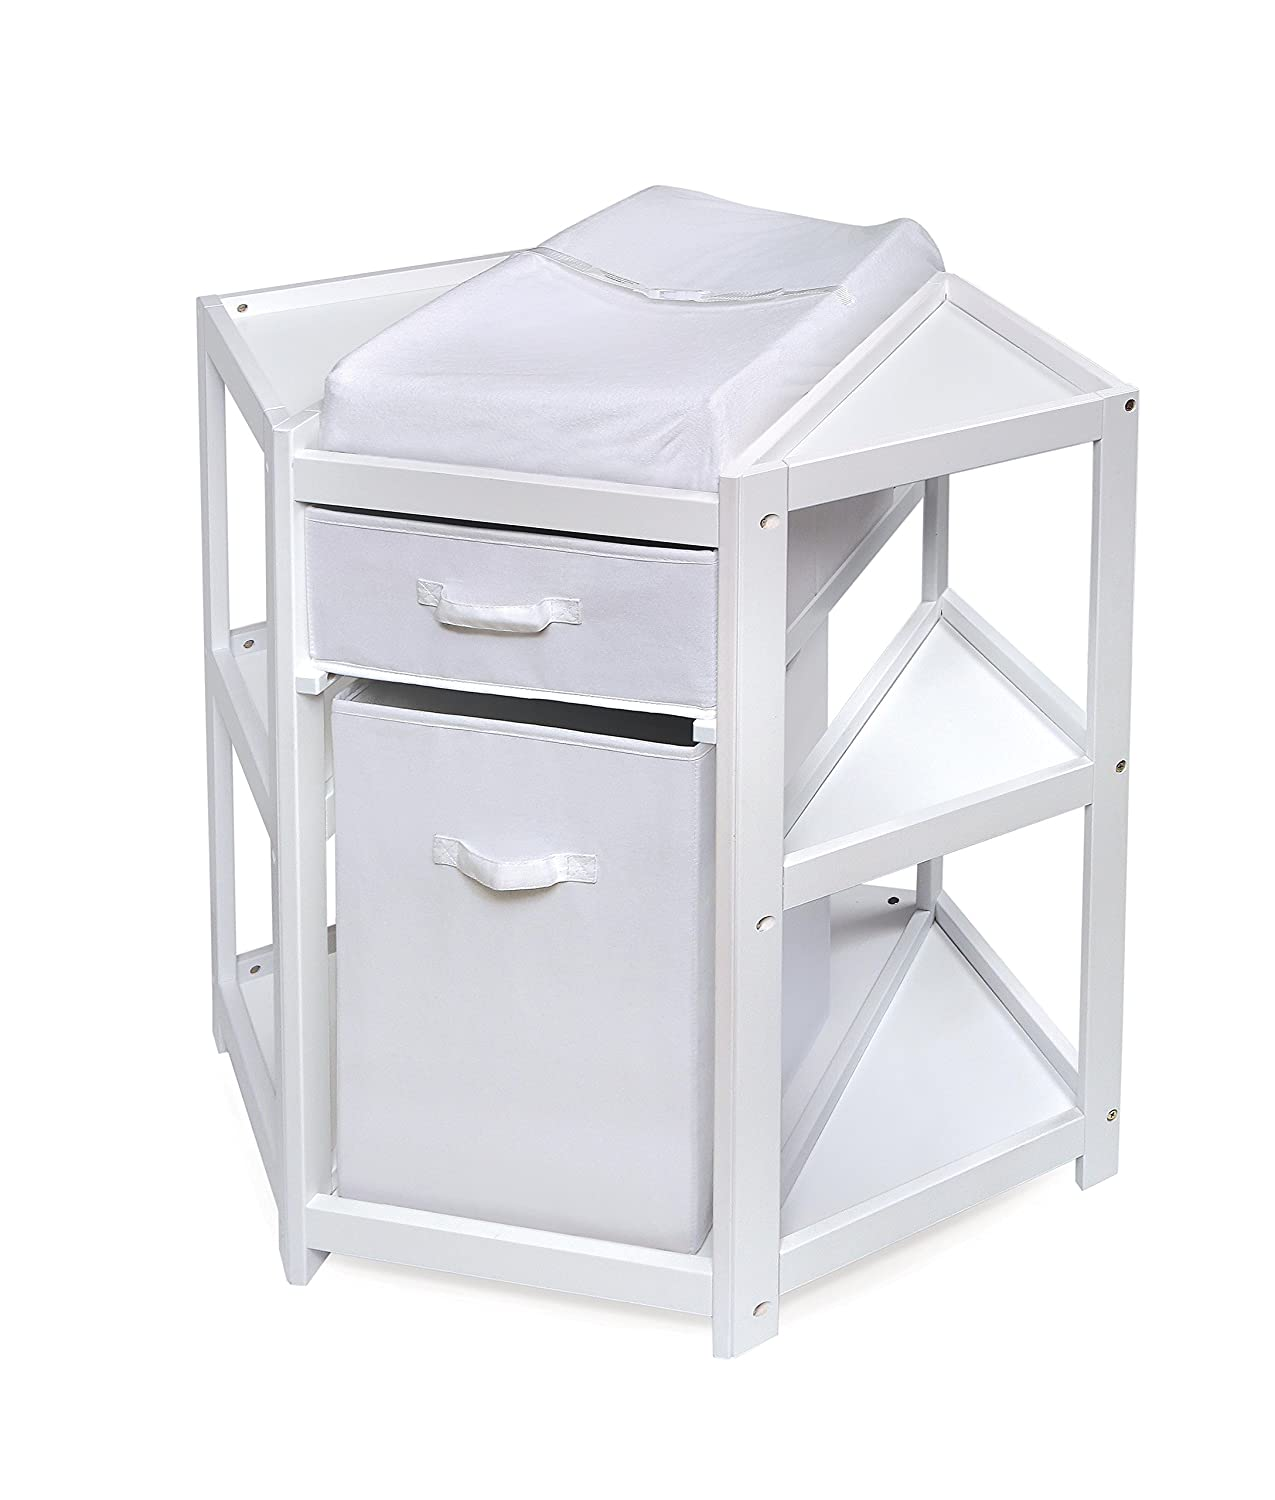 Amazon.com : Badger Basket Diaper Corner Baby Changing Table With  Hamper/Basket, White : Baby